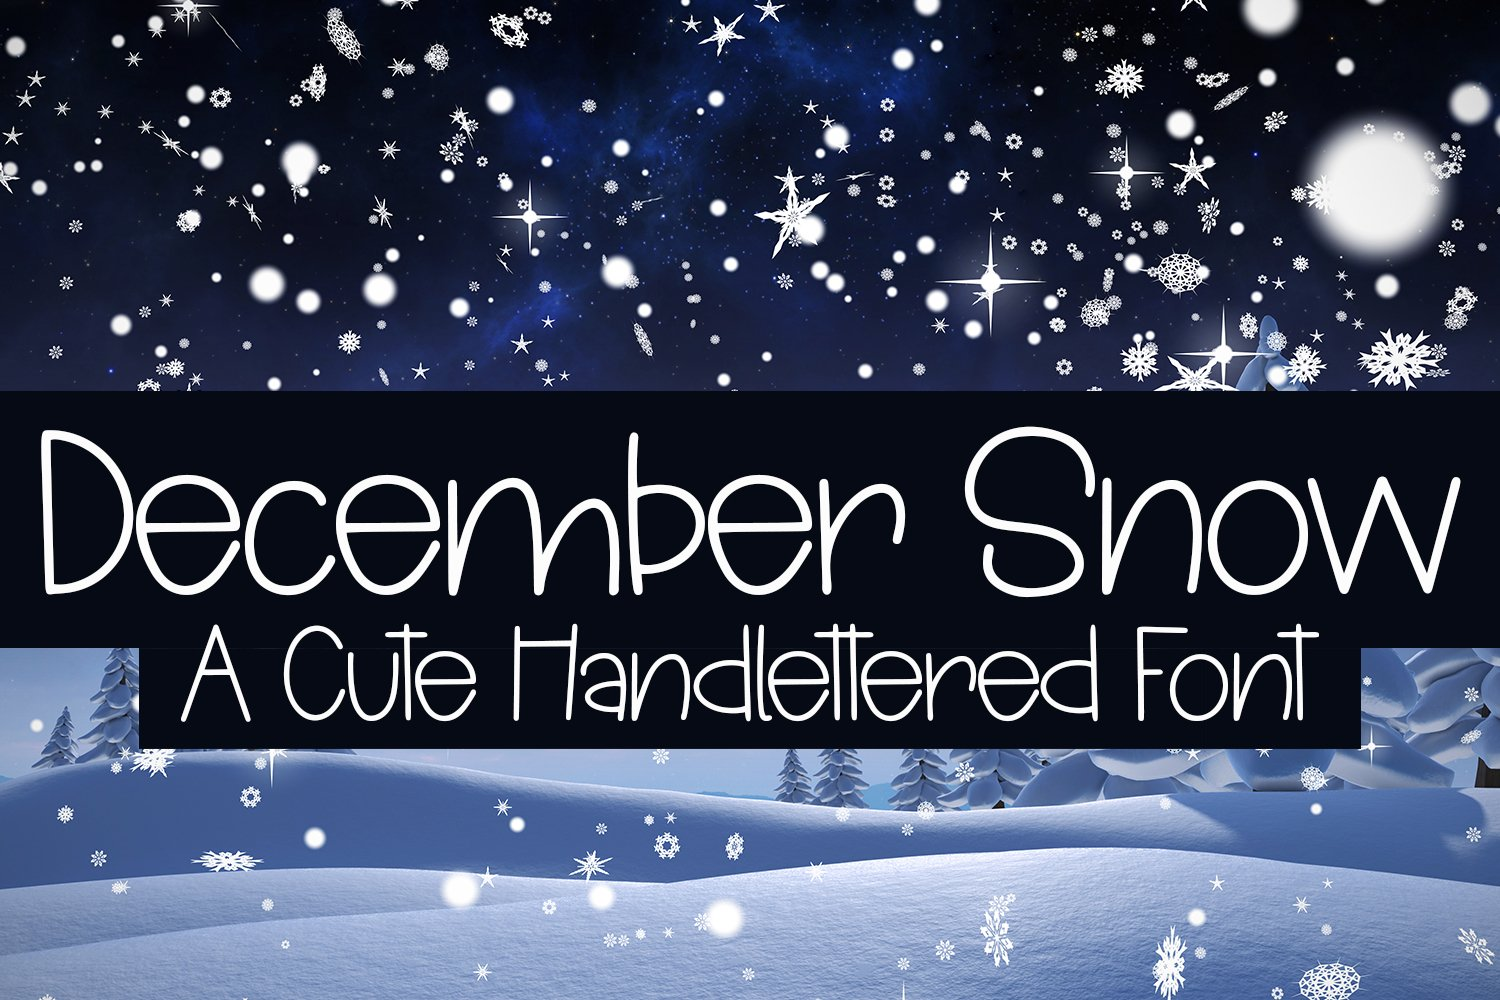 December Snow - A Cute Hand-Lettered Font example image 1